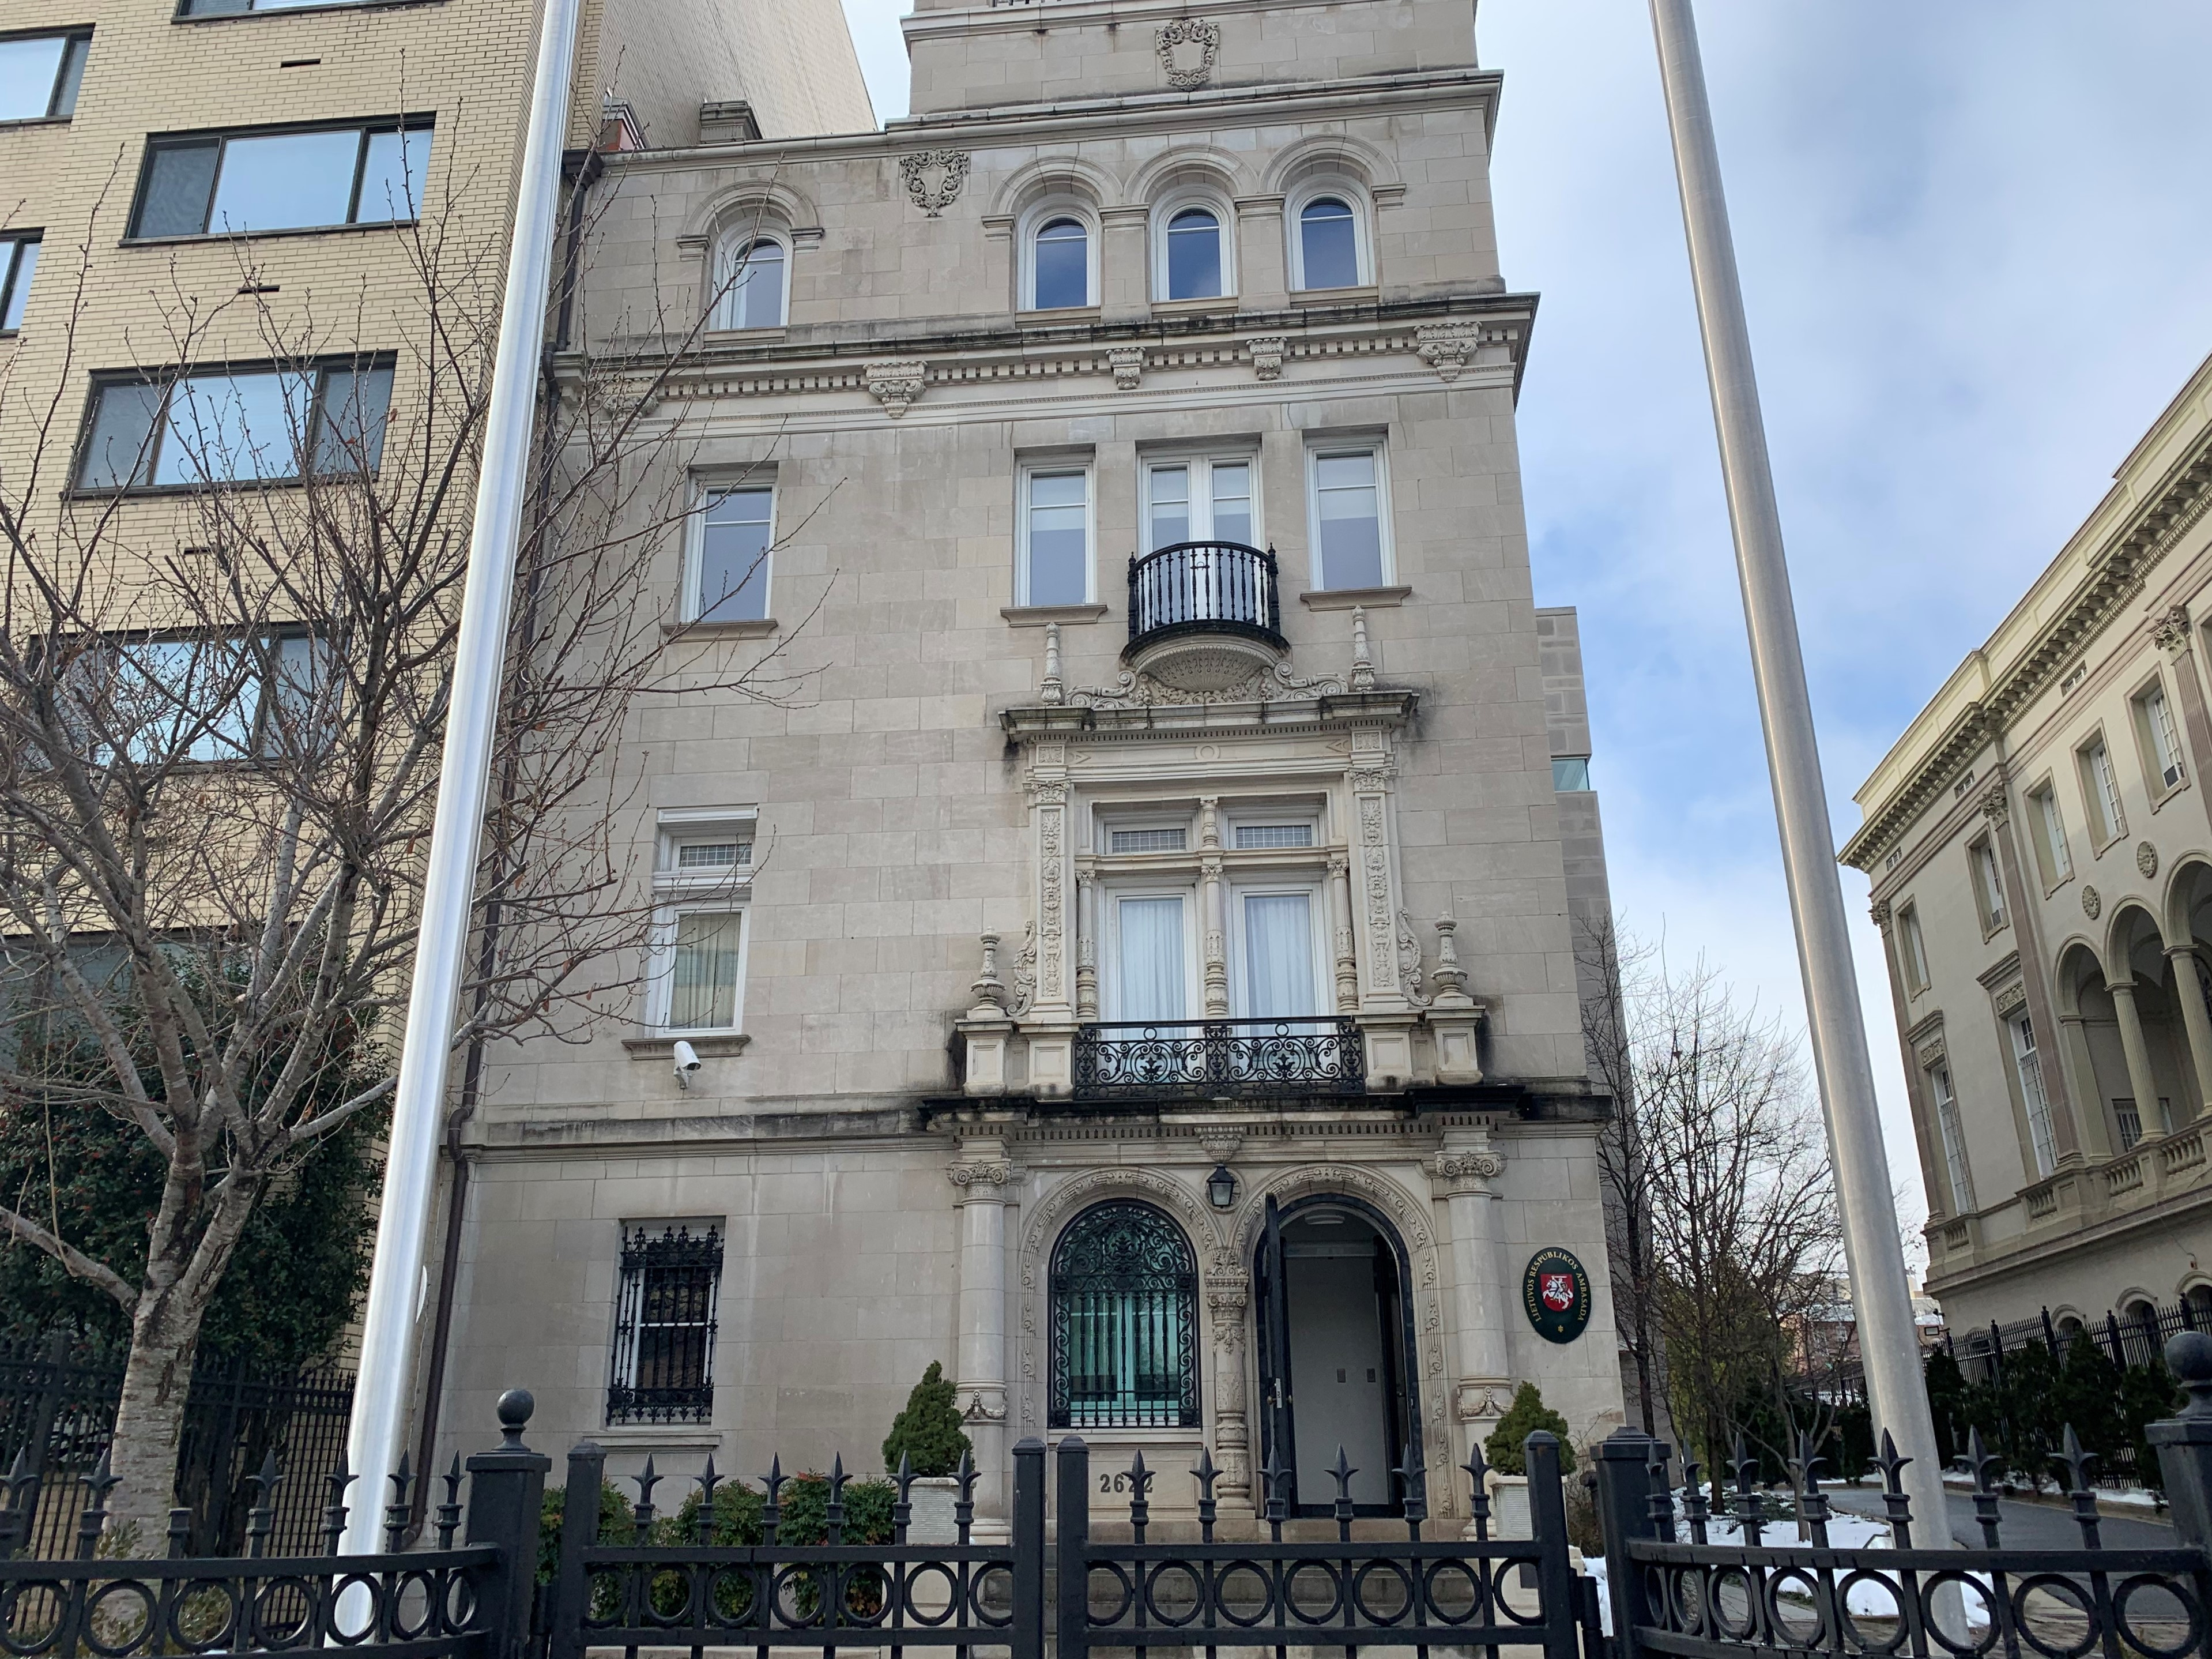 Real Estate and Homes For Sale Near the Embassy of Lithuania in Washington, DC. Artyom Shmatko Realtor